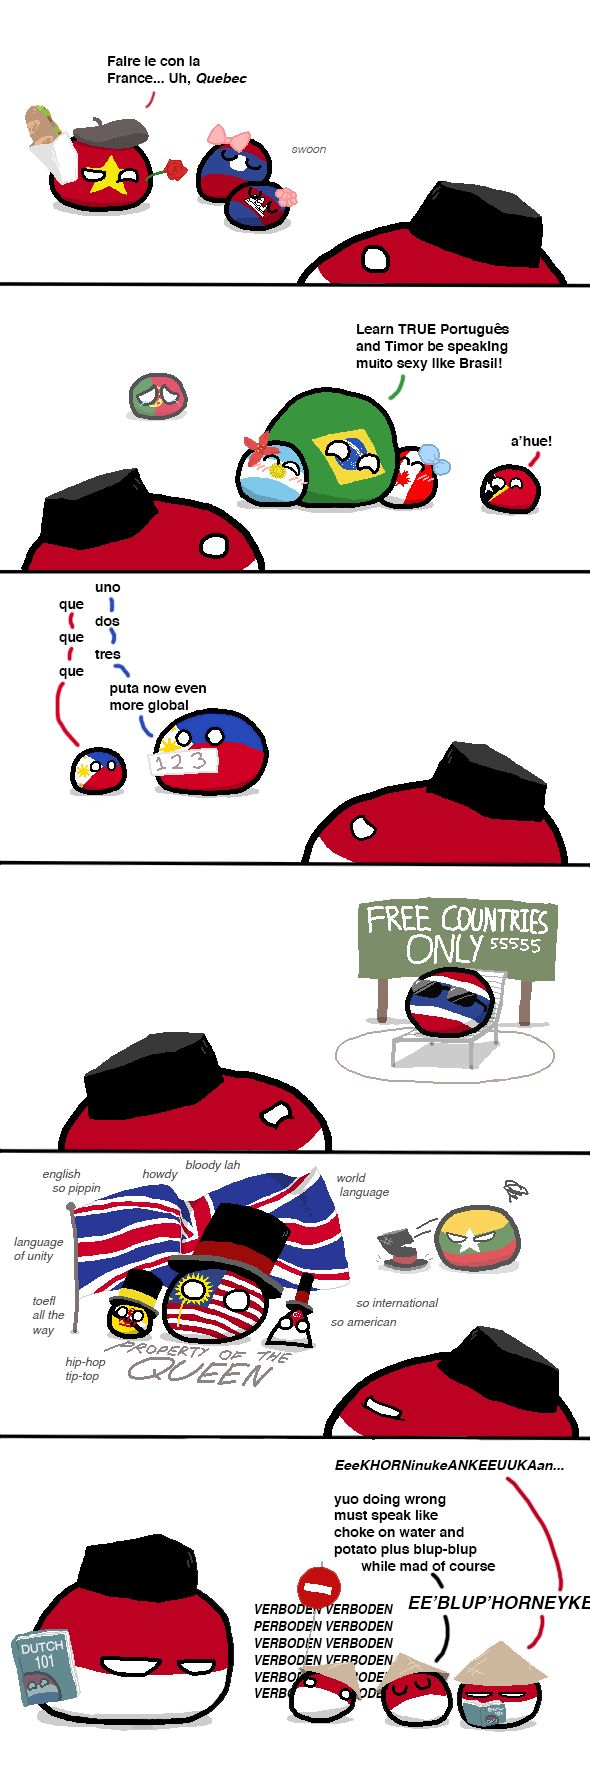 Bruneiball is the countryball that represents the State of Brunei, Abode of Peace. Their language is Malay but is spoken as minority English, Chinese Mandarin, Indonesian, and Arabic. 1300s the empires of the SEA or South East Asia like Majapahitball, Khmer Empireball, Malaccaball and Tondoball except cavemens who didn't made their empires or dynasties. The nickname of Brunei is Poli or Poni in chinese. The founder of the Bruneian Empireball was Sultan Muhammad Shah or his nicknamed Awang...